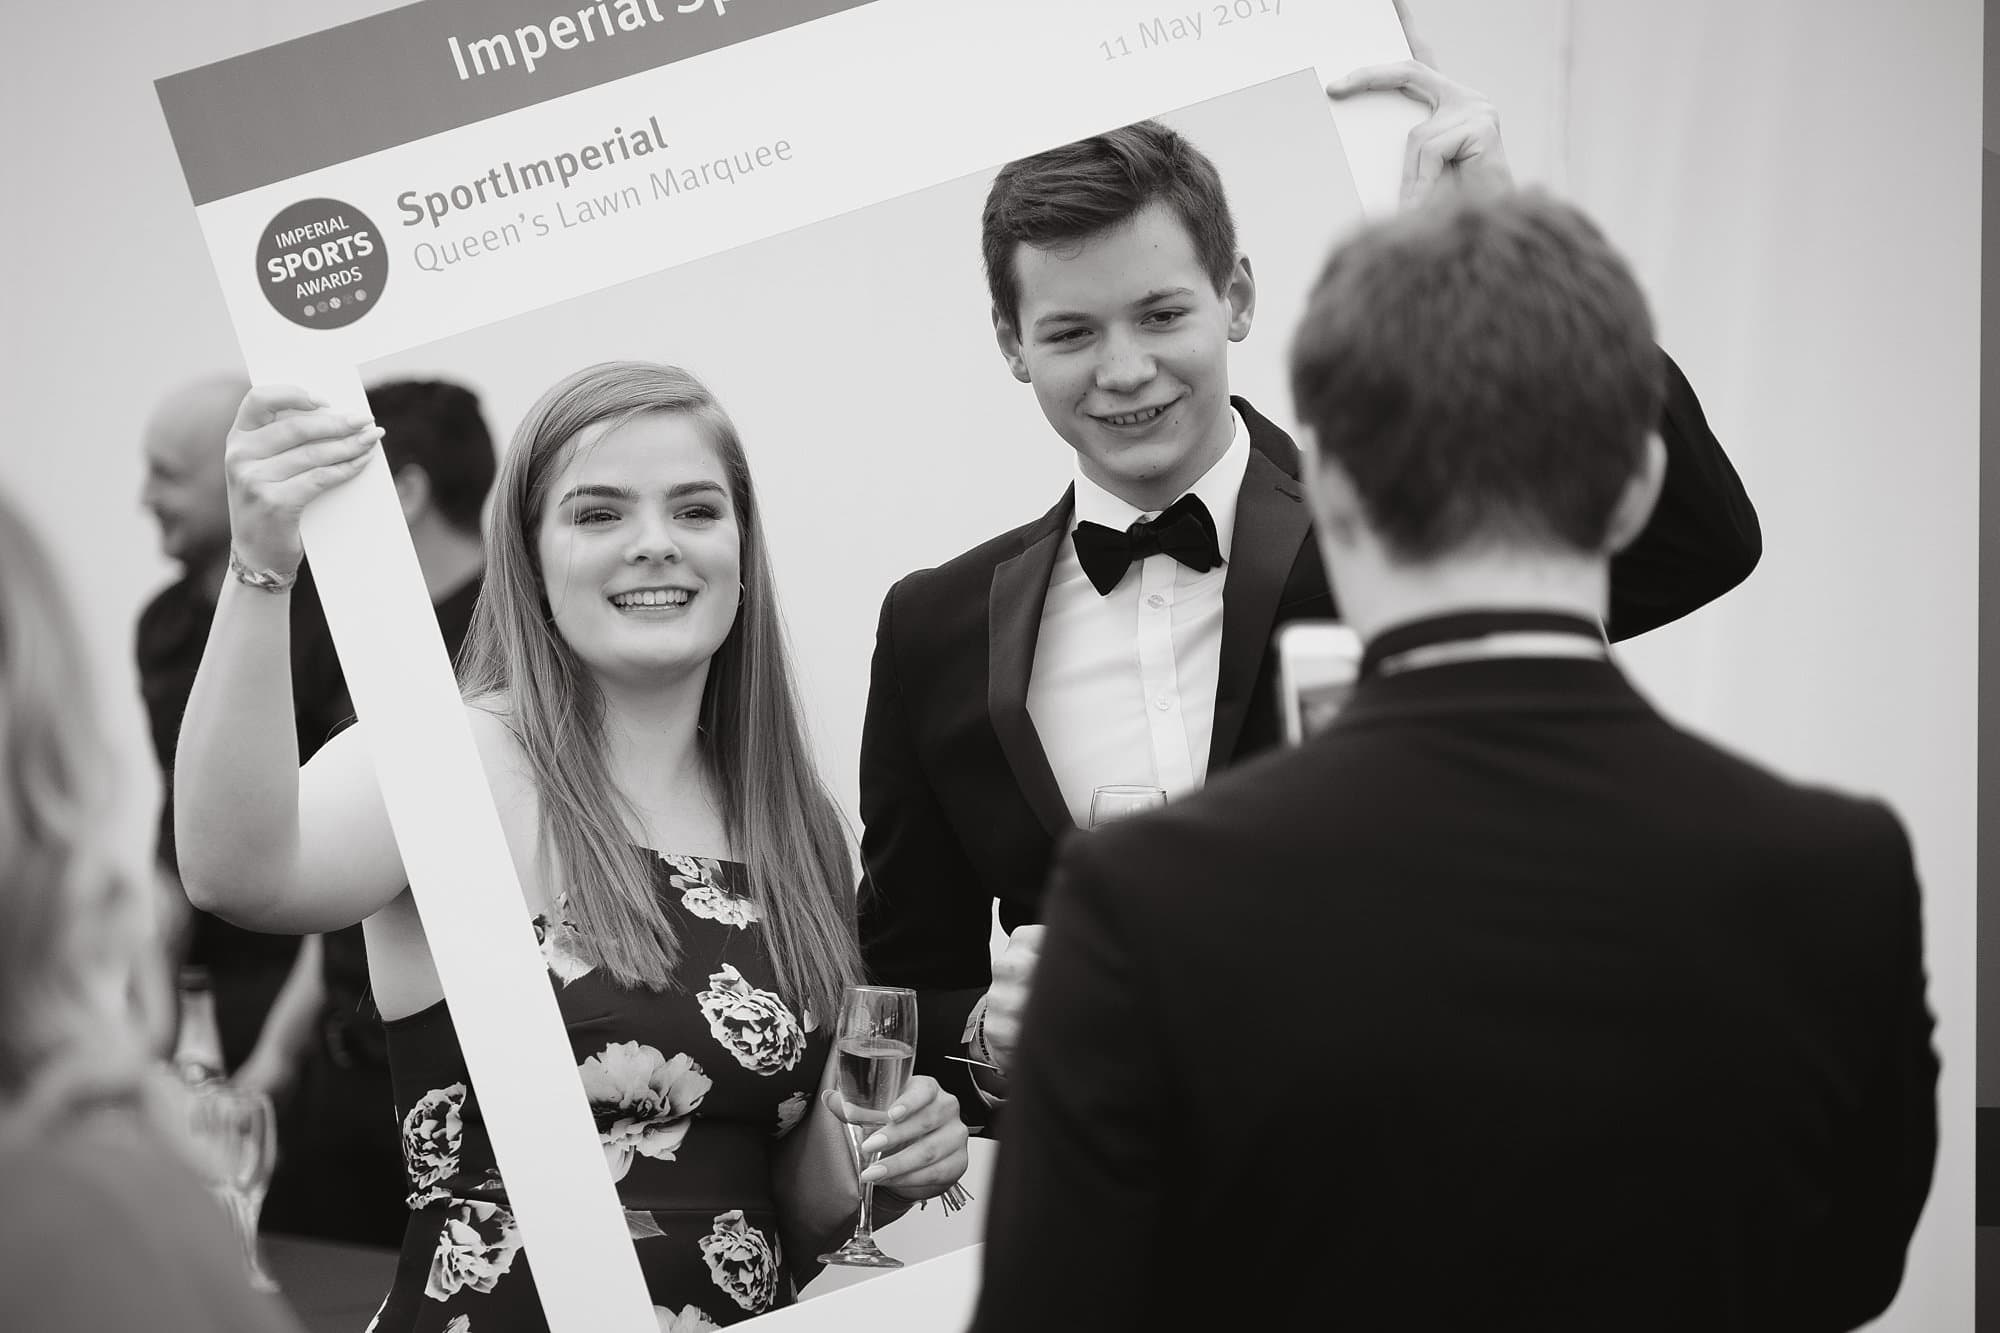 event photographer london icl 2017 004 - Imperial College London Sports Awards 2017